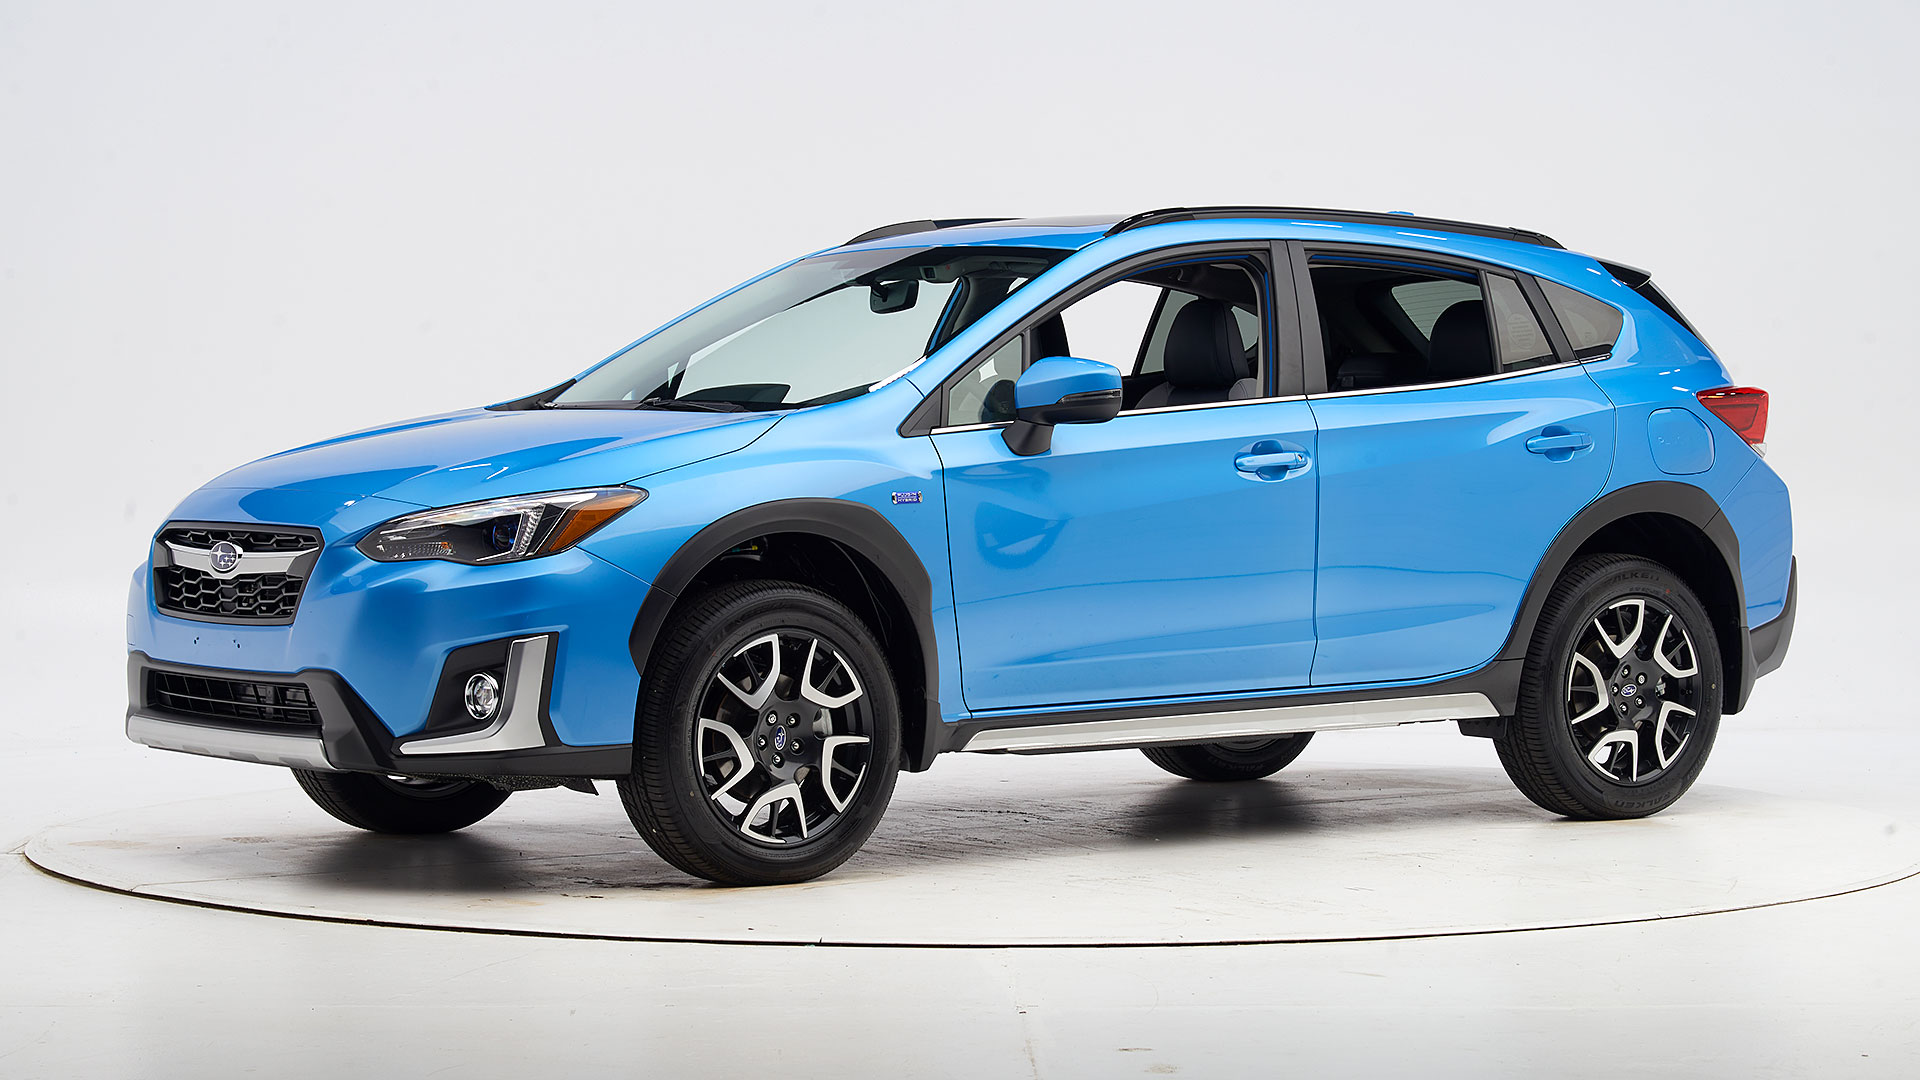 2021 Subaru Crosstrek Hybrid 4-door wagon